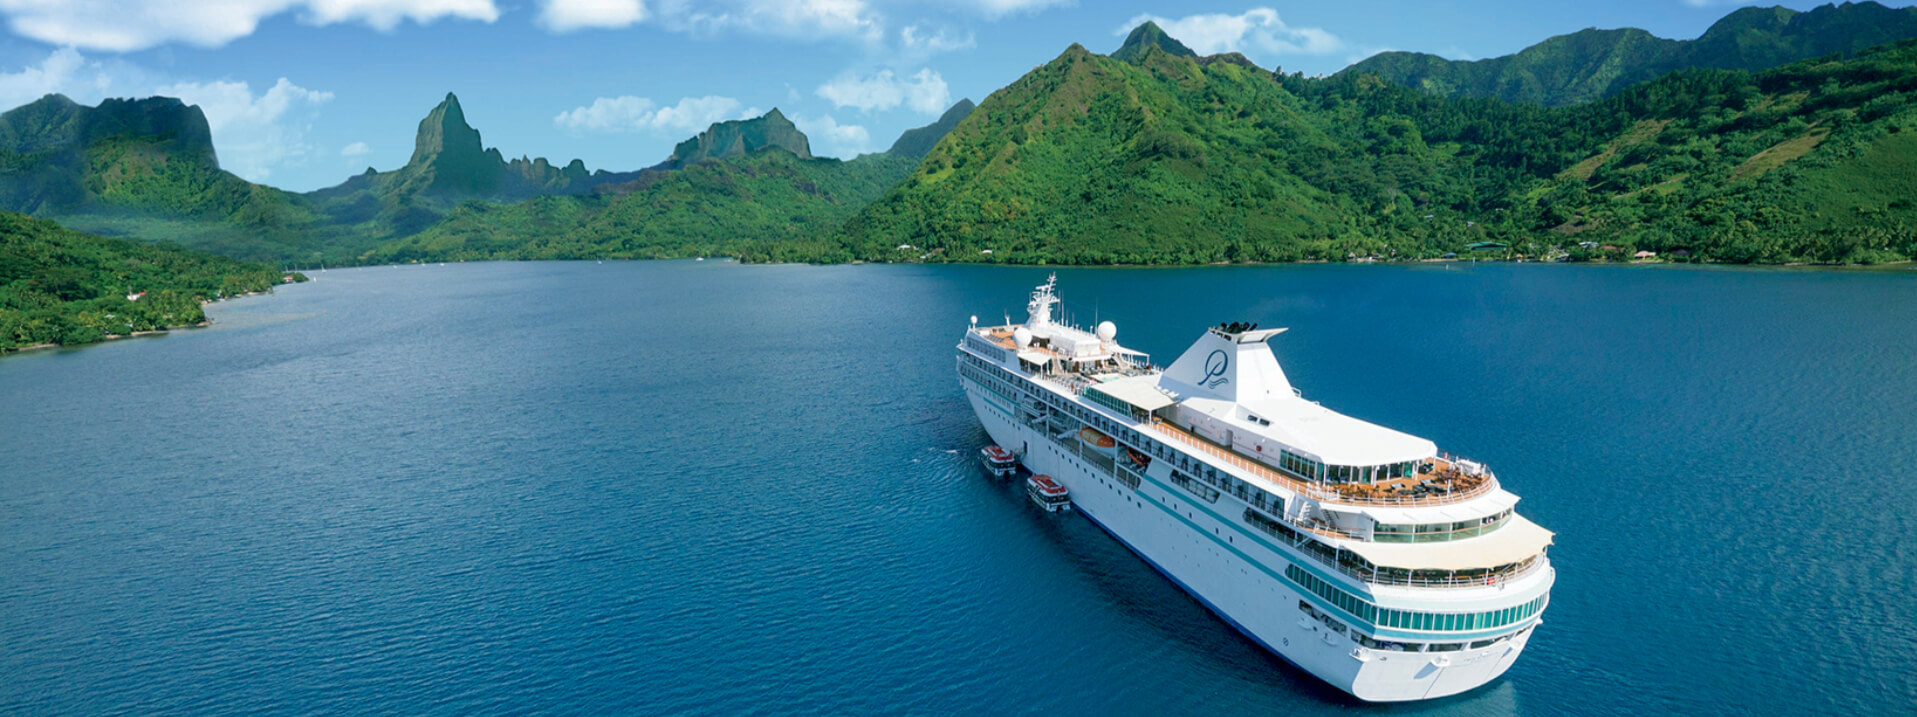 Partner of the Week - Paul Gauguin Cruises